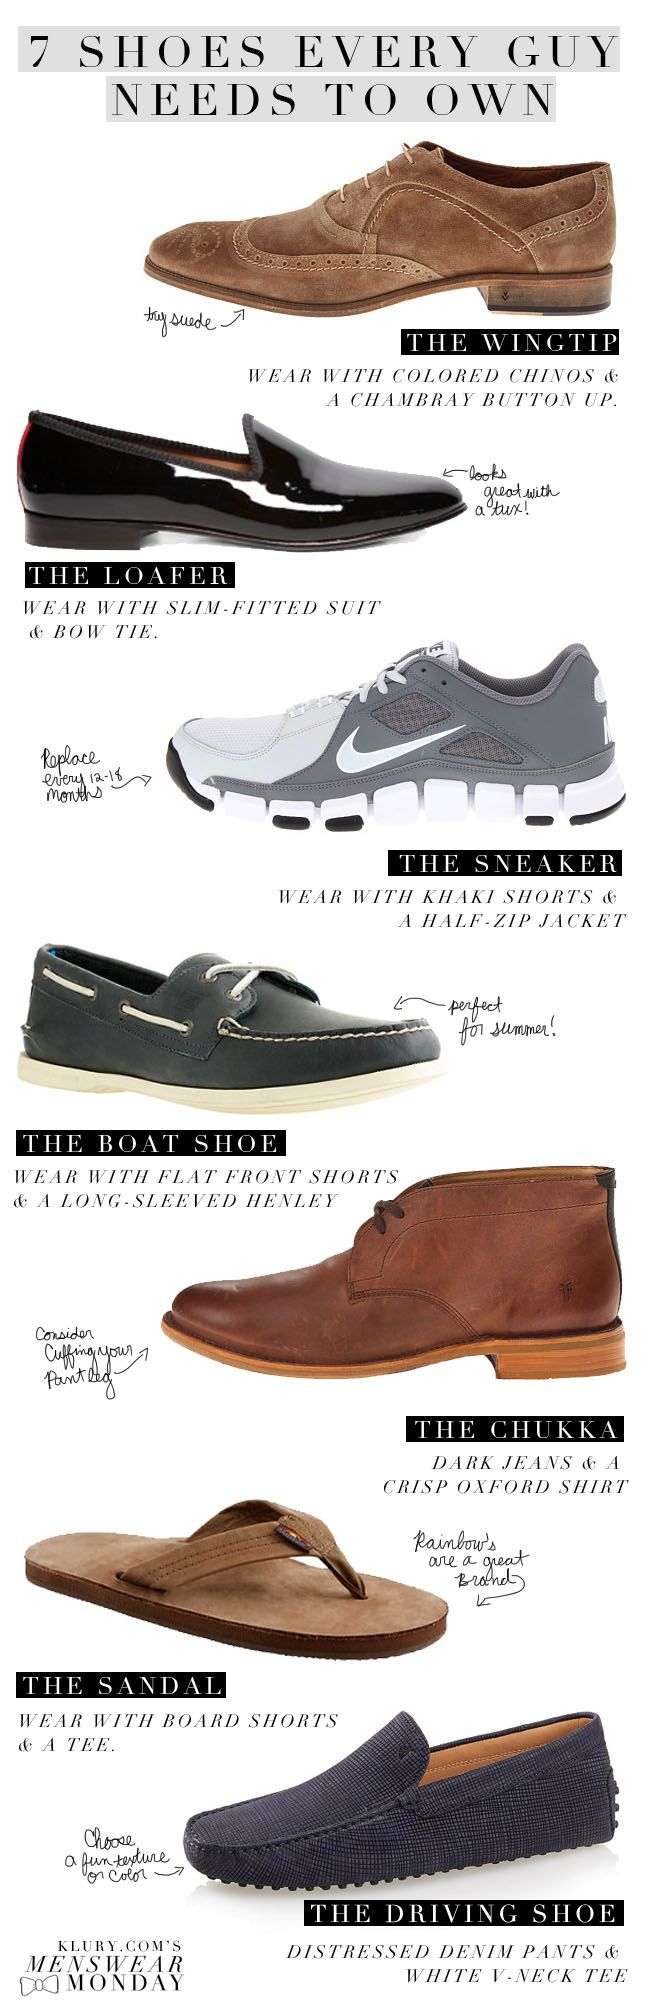 a72819c6d382 7 Types of Shoes Every man should have